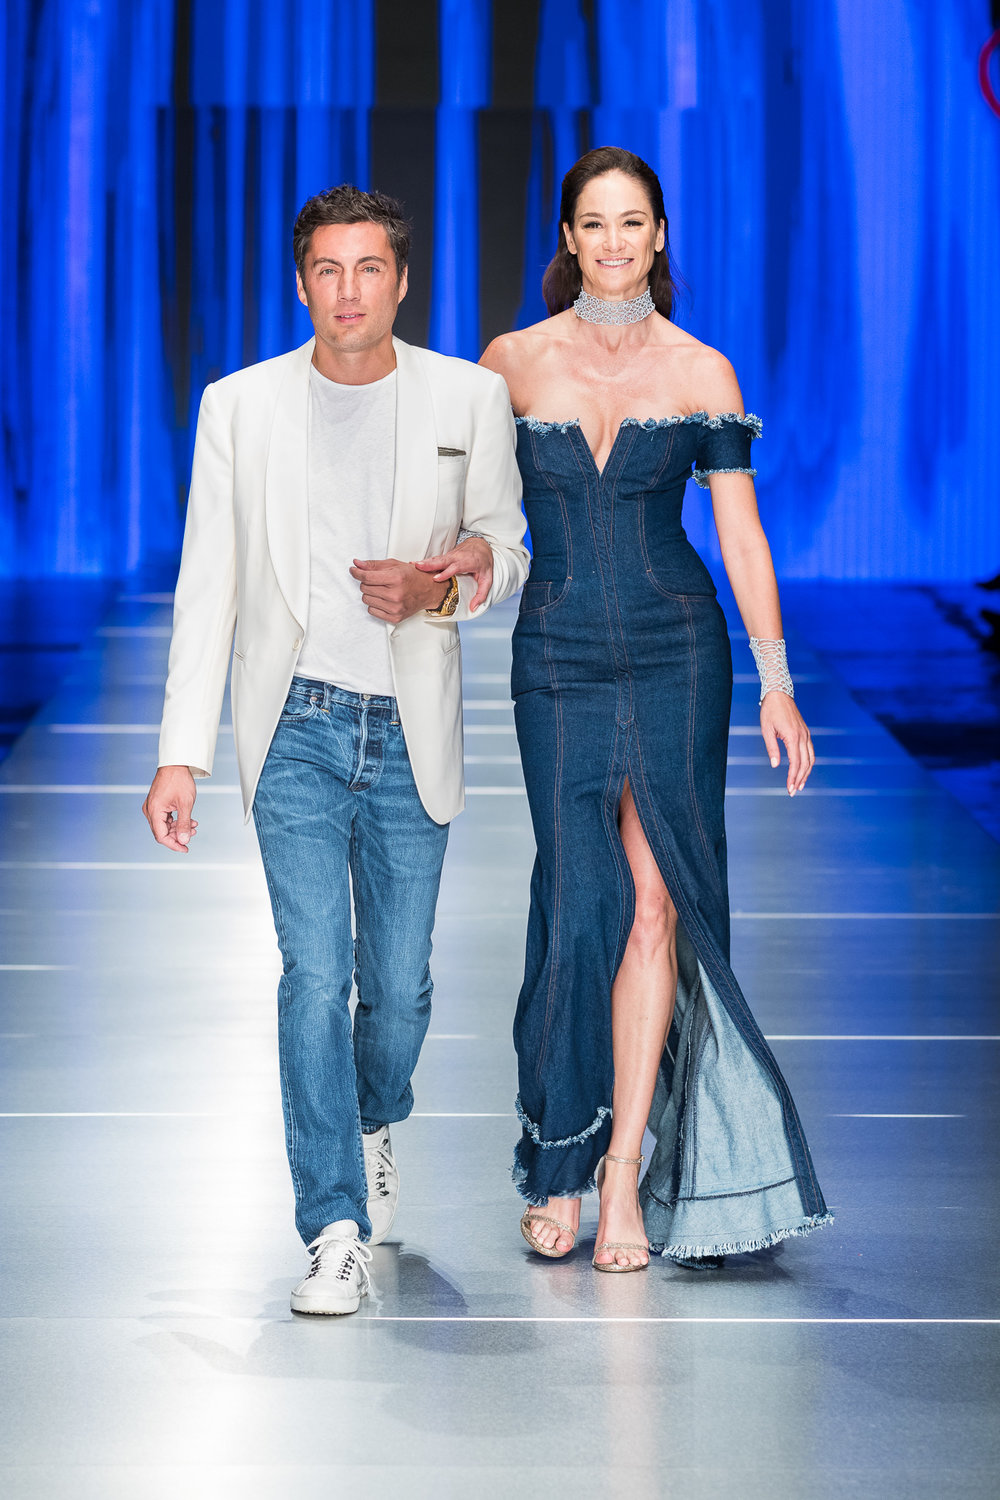 Rene by RR | Miami Fashion Week 2018